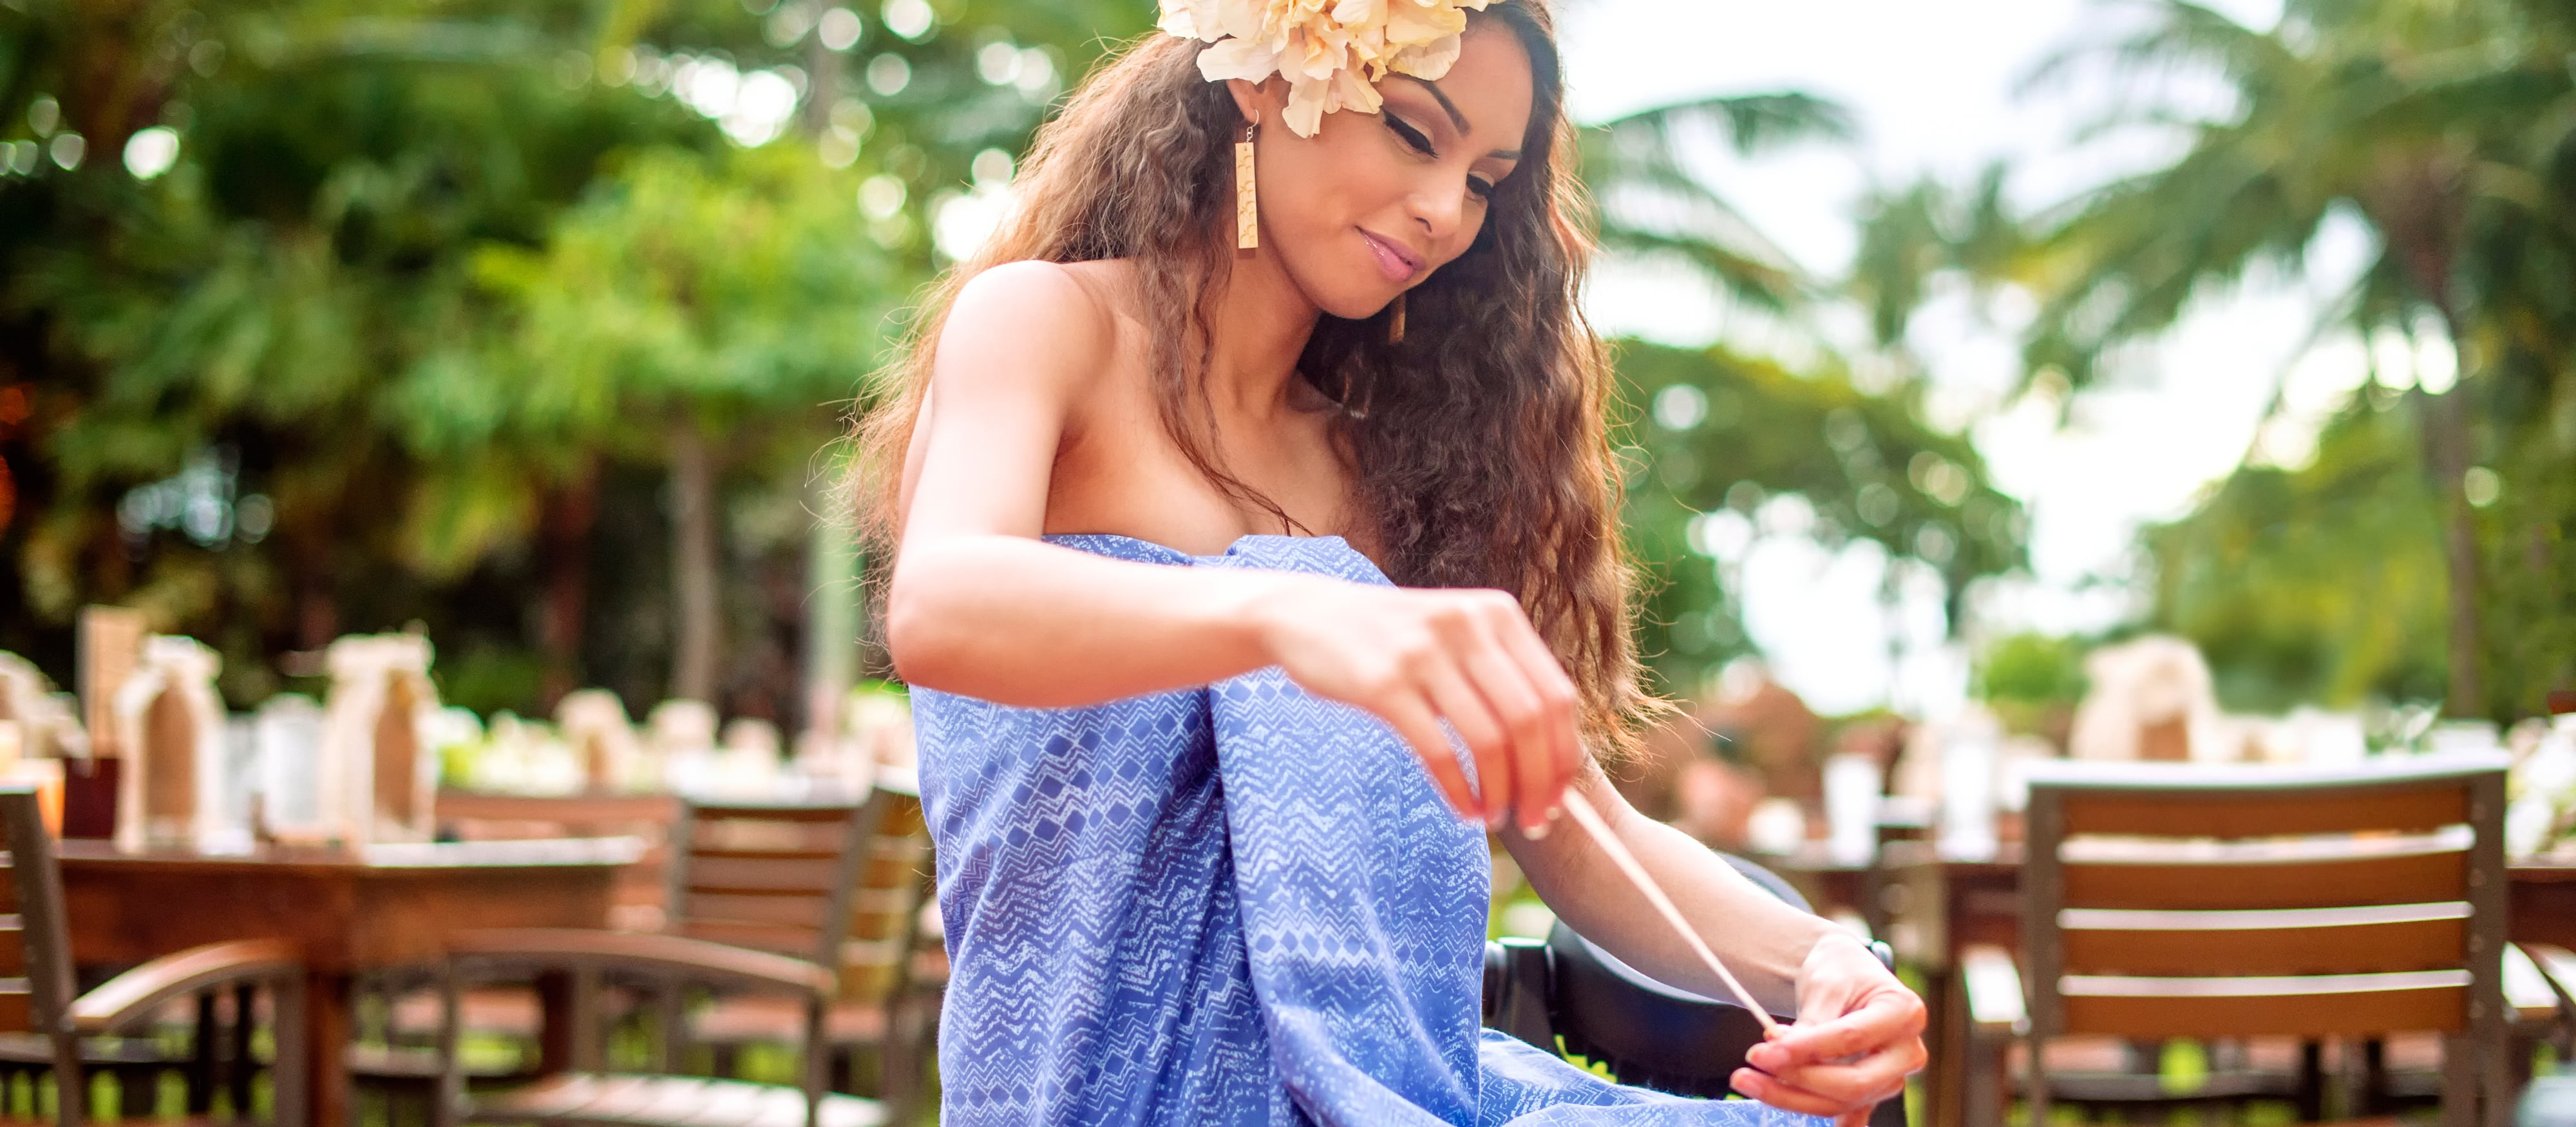 A woman with a beautiful flower in her hair smiles as she prepares string to make a lei in the luau seating area.